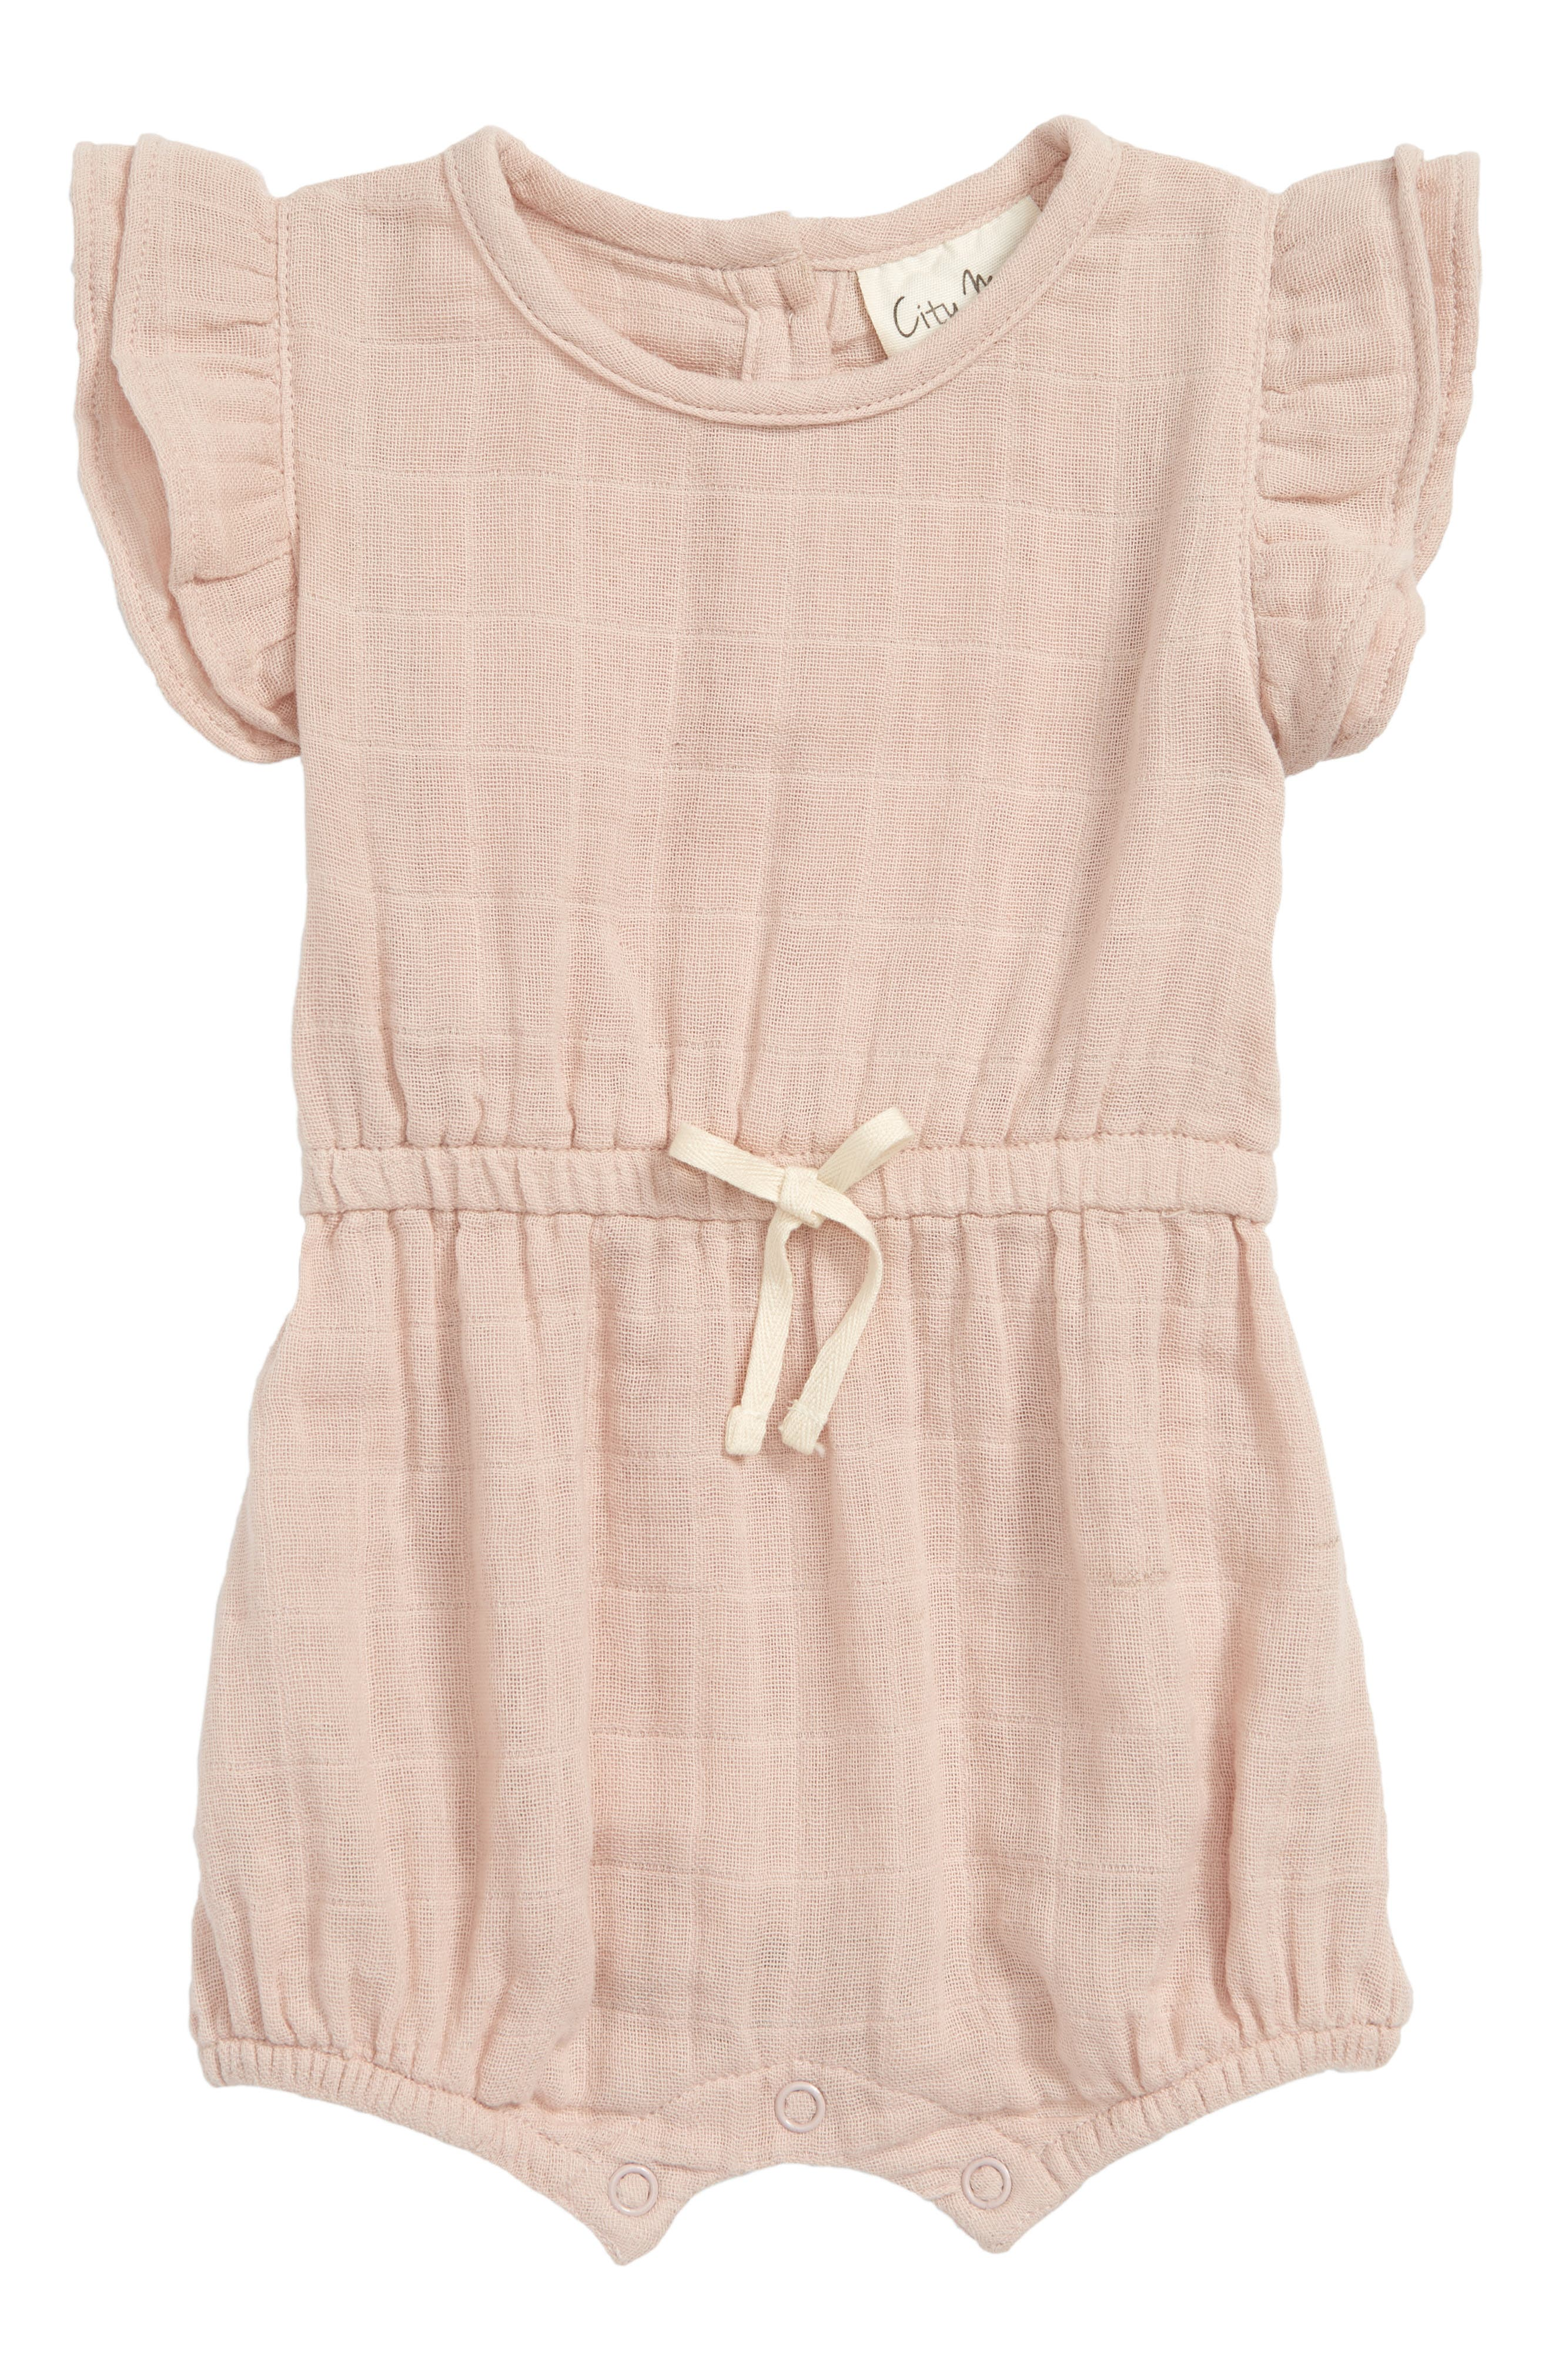 Organic Cotton Muslin Romper by City Mouse